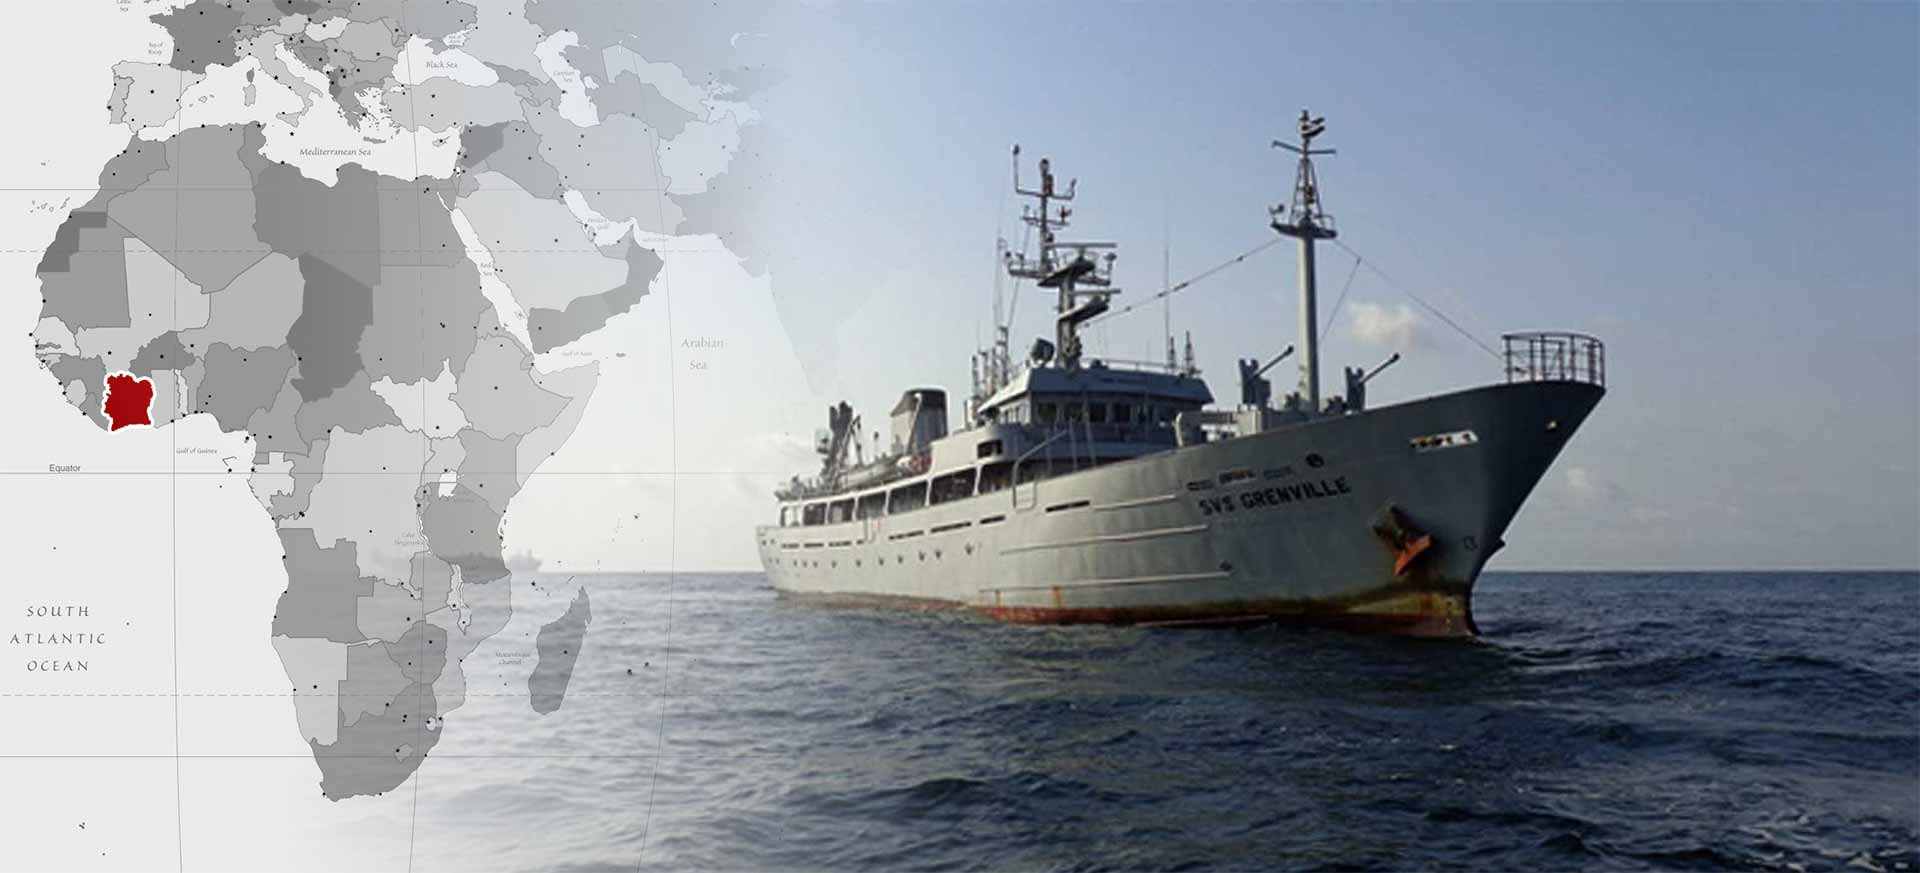 SVS Specialised Vessel Services - Africa